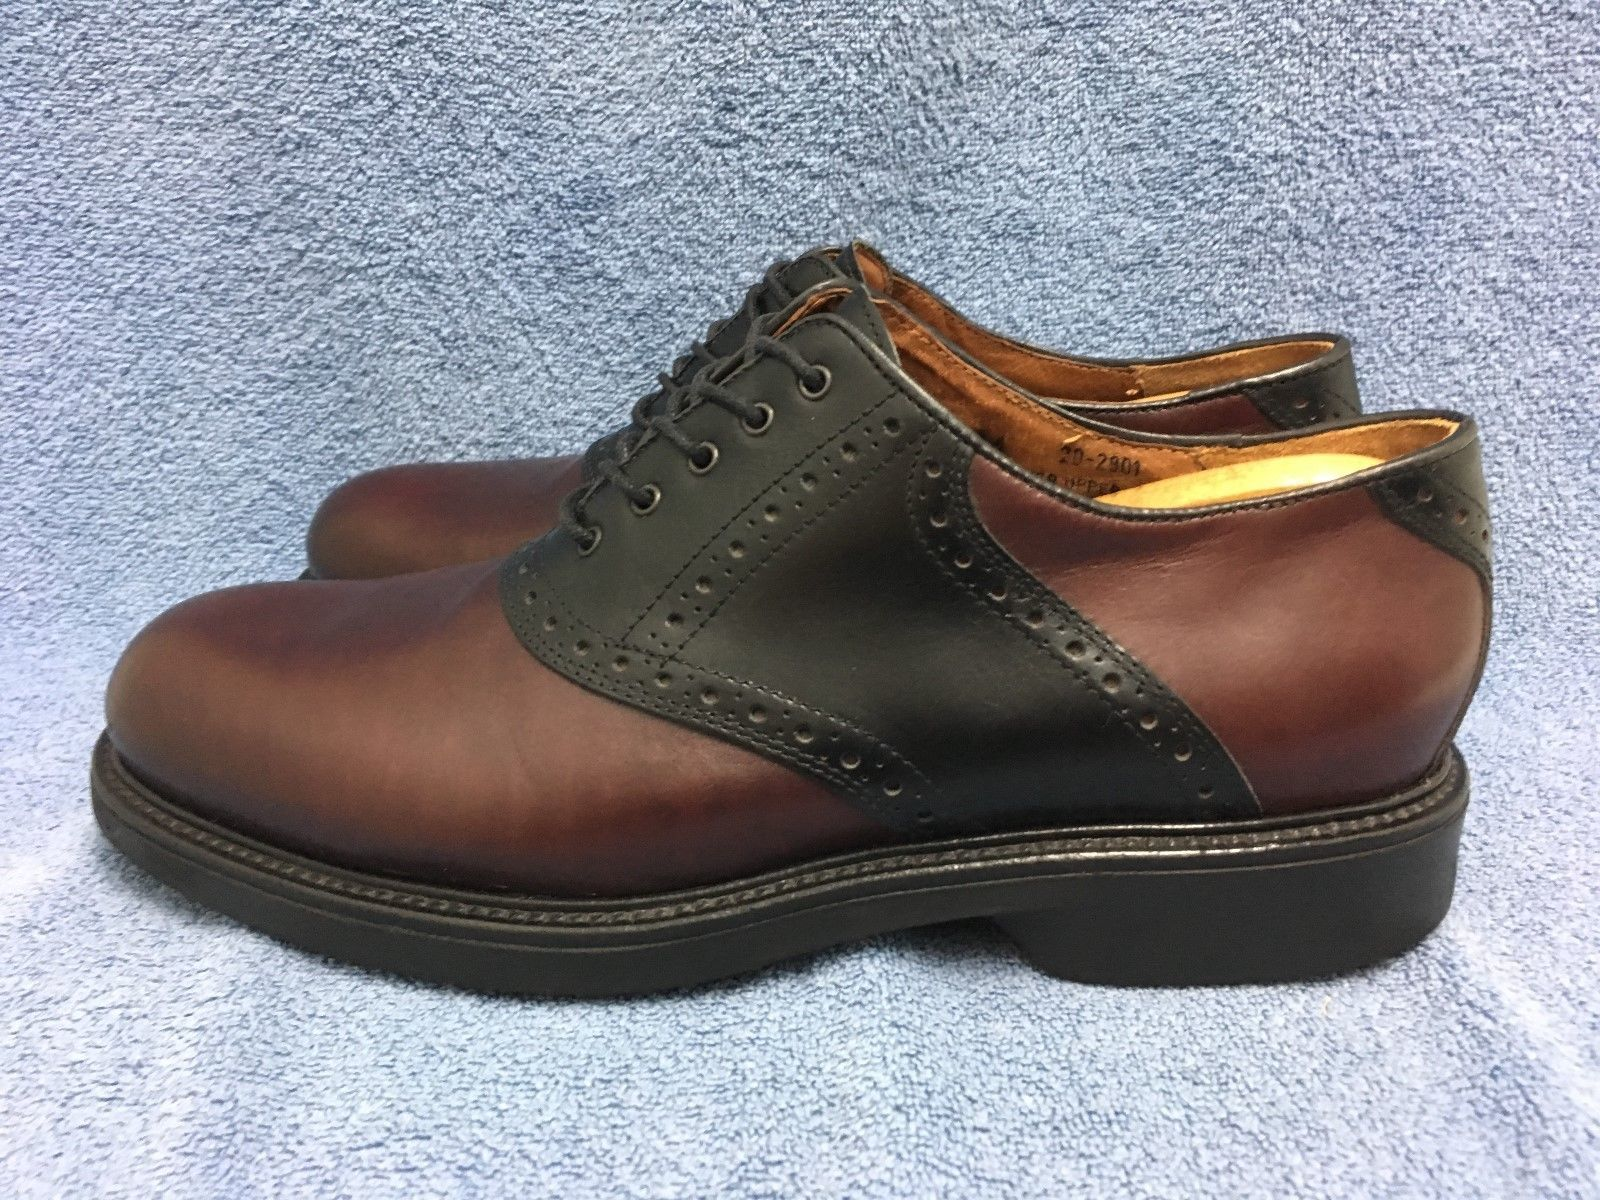 Johnston & Murphy Passport Two Tone Saddle Oxfords Made in Italy Size 11 1/2 M